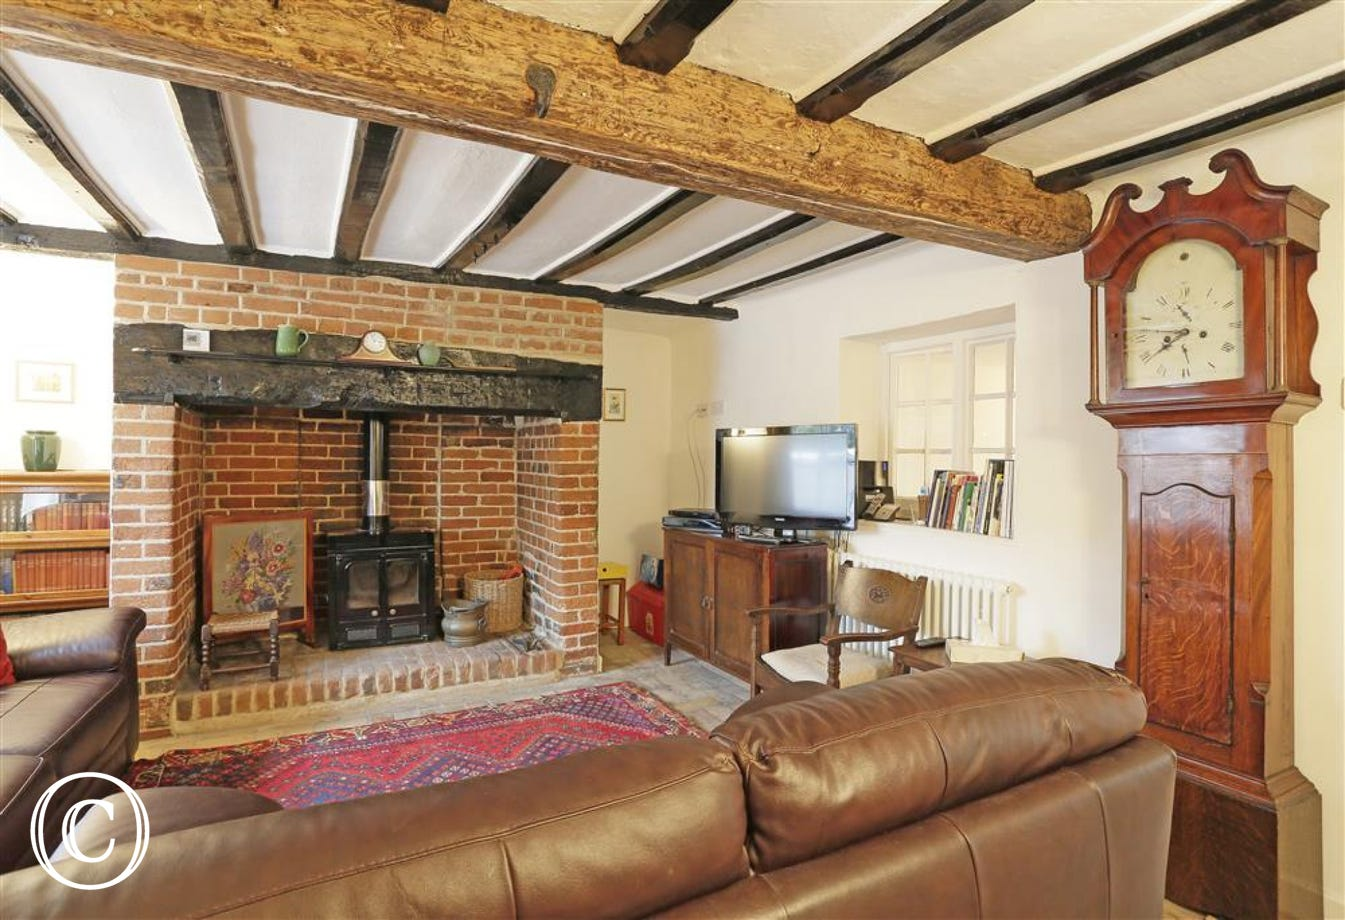 Relax in front of the television in front of the woodburner after a day sight seeing in the local area.